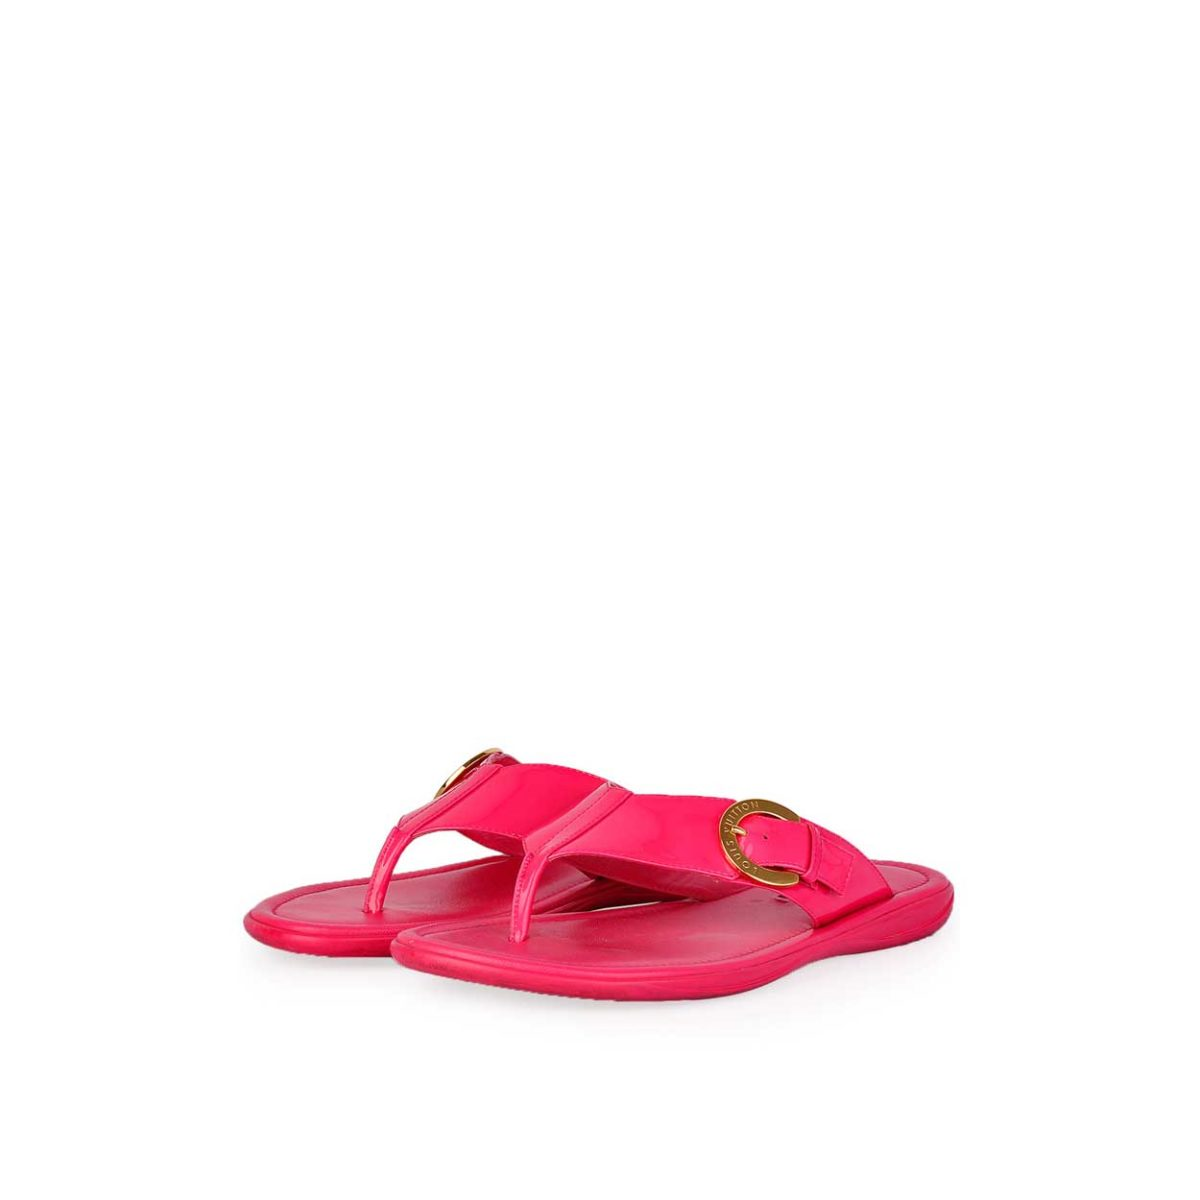 66672817c31d LOUIS VUITTON Hot Pink Patent Leather Thong Slippers - S  37 (4.5 ...